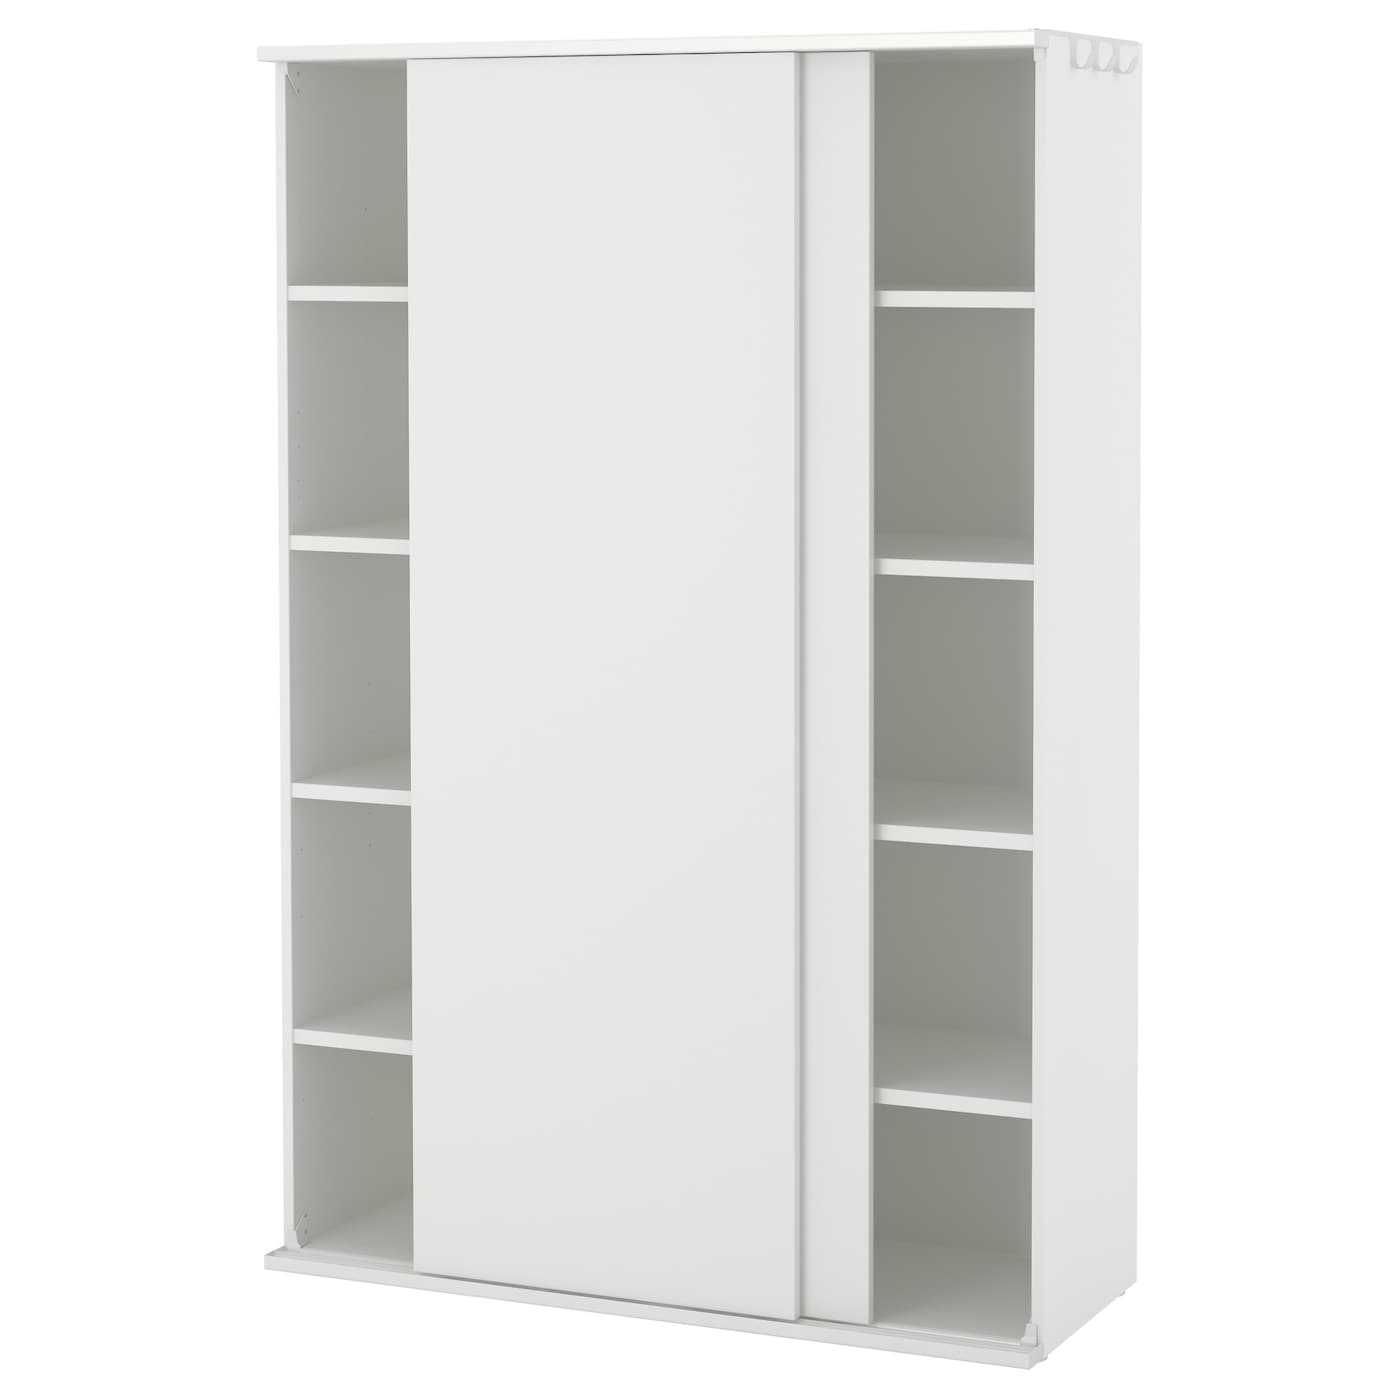 platsa wardrobe white fonnes white 120 x 46 x 181 cm ikea. Black Bedroom Furniture Sets. Home Design Ideas